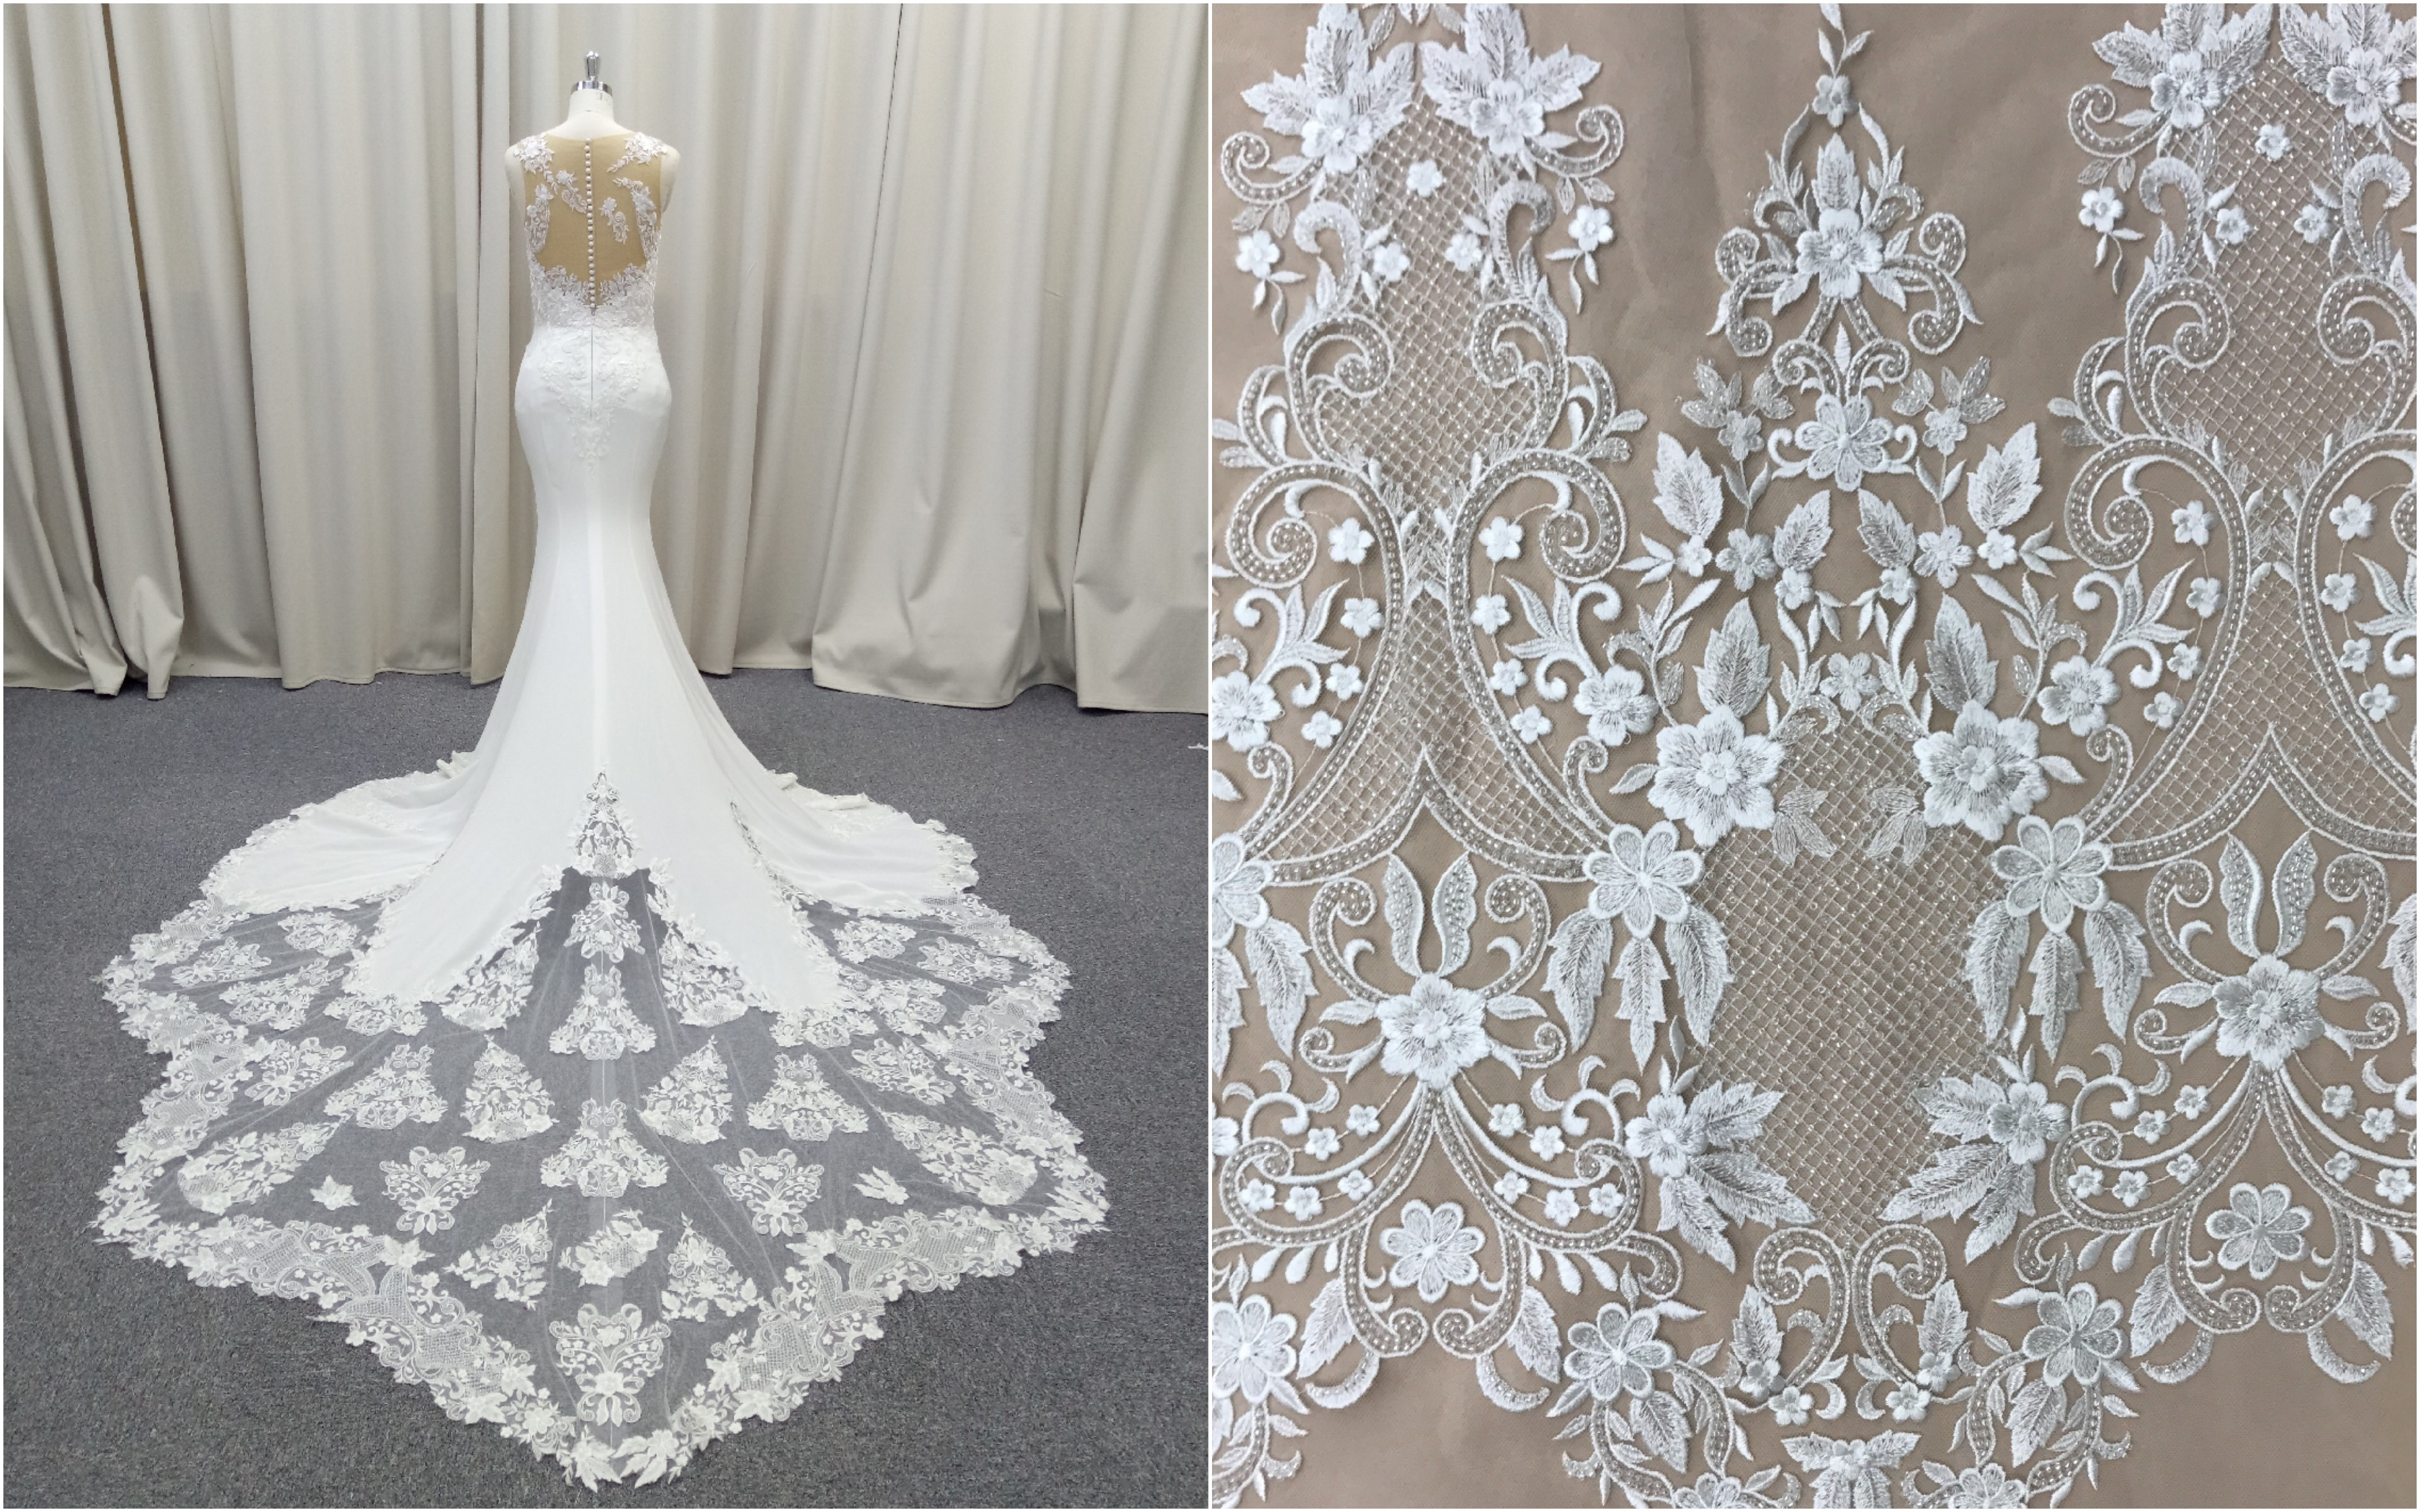 Wedding Dress Embroidery Patterns These Wedding Dresses With Lace Cutout Trains Deserve A Double Take